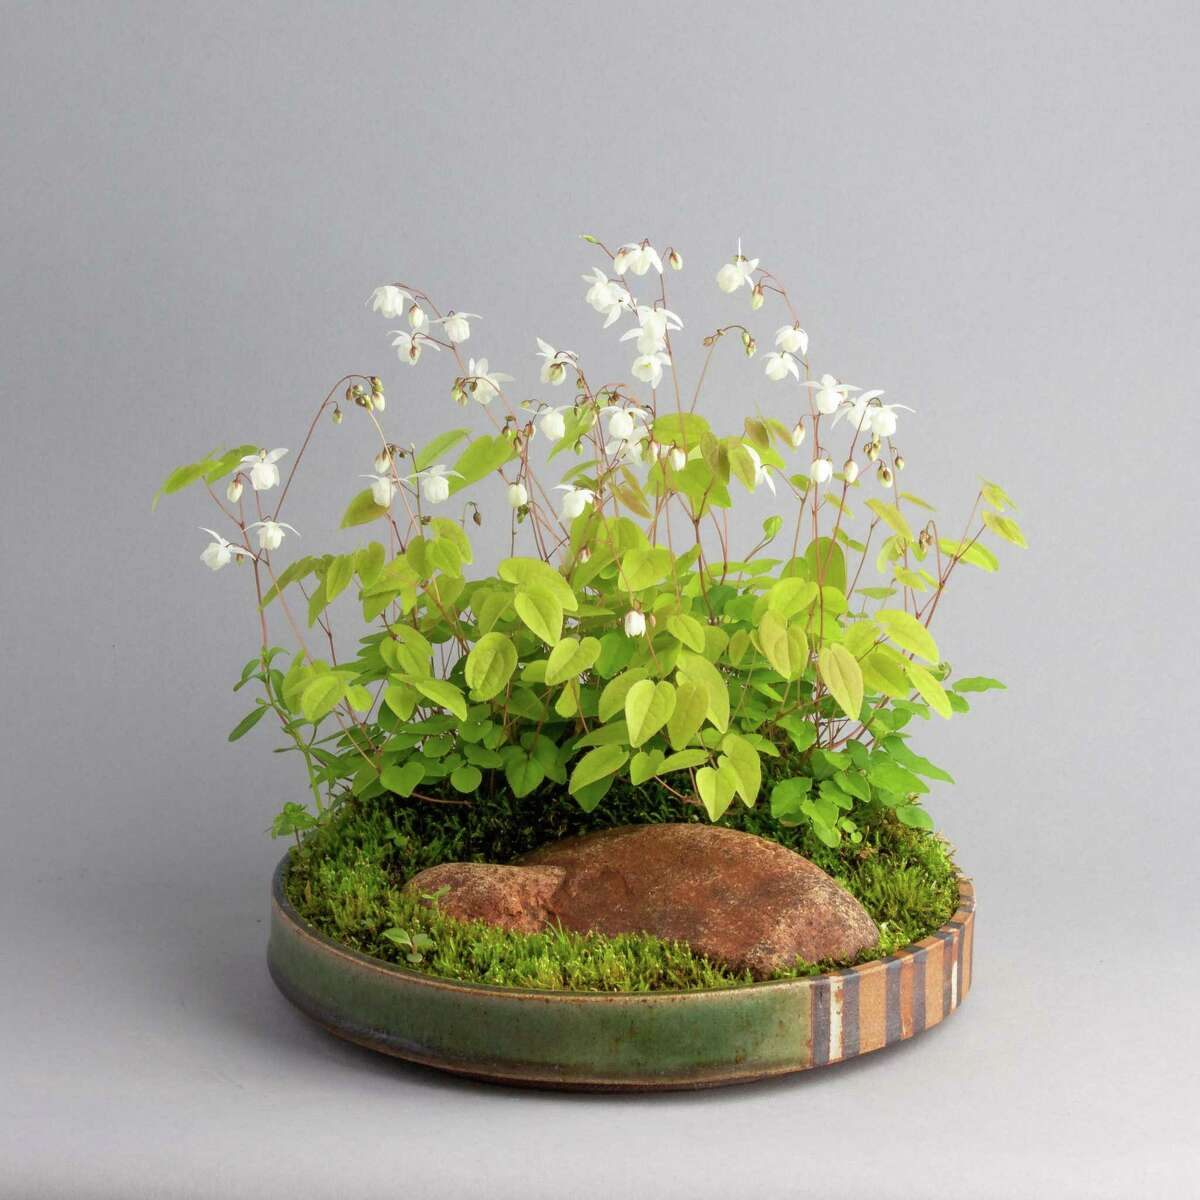 Although bonsai trees can appear immutable, kusamono compositions mark the seasons, here the arrival of the early spring blooms of the epimedium hybrid Niveum.